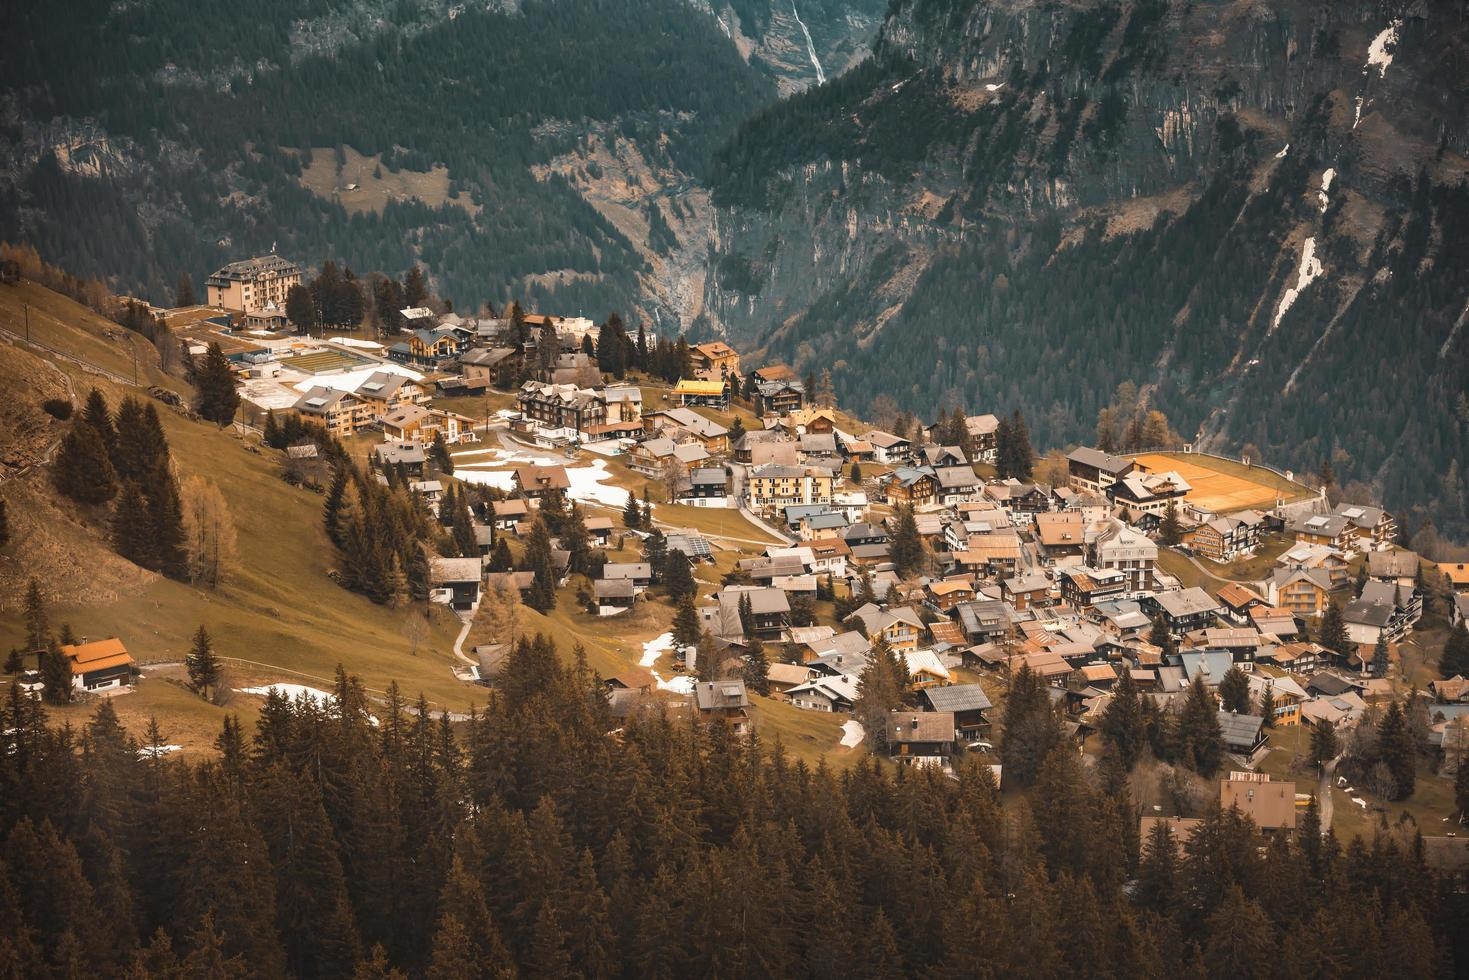 Aerial view over village of Murren city from cable car, Switzerland. photo